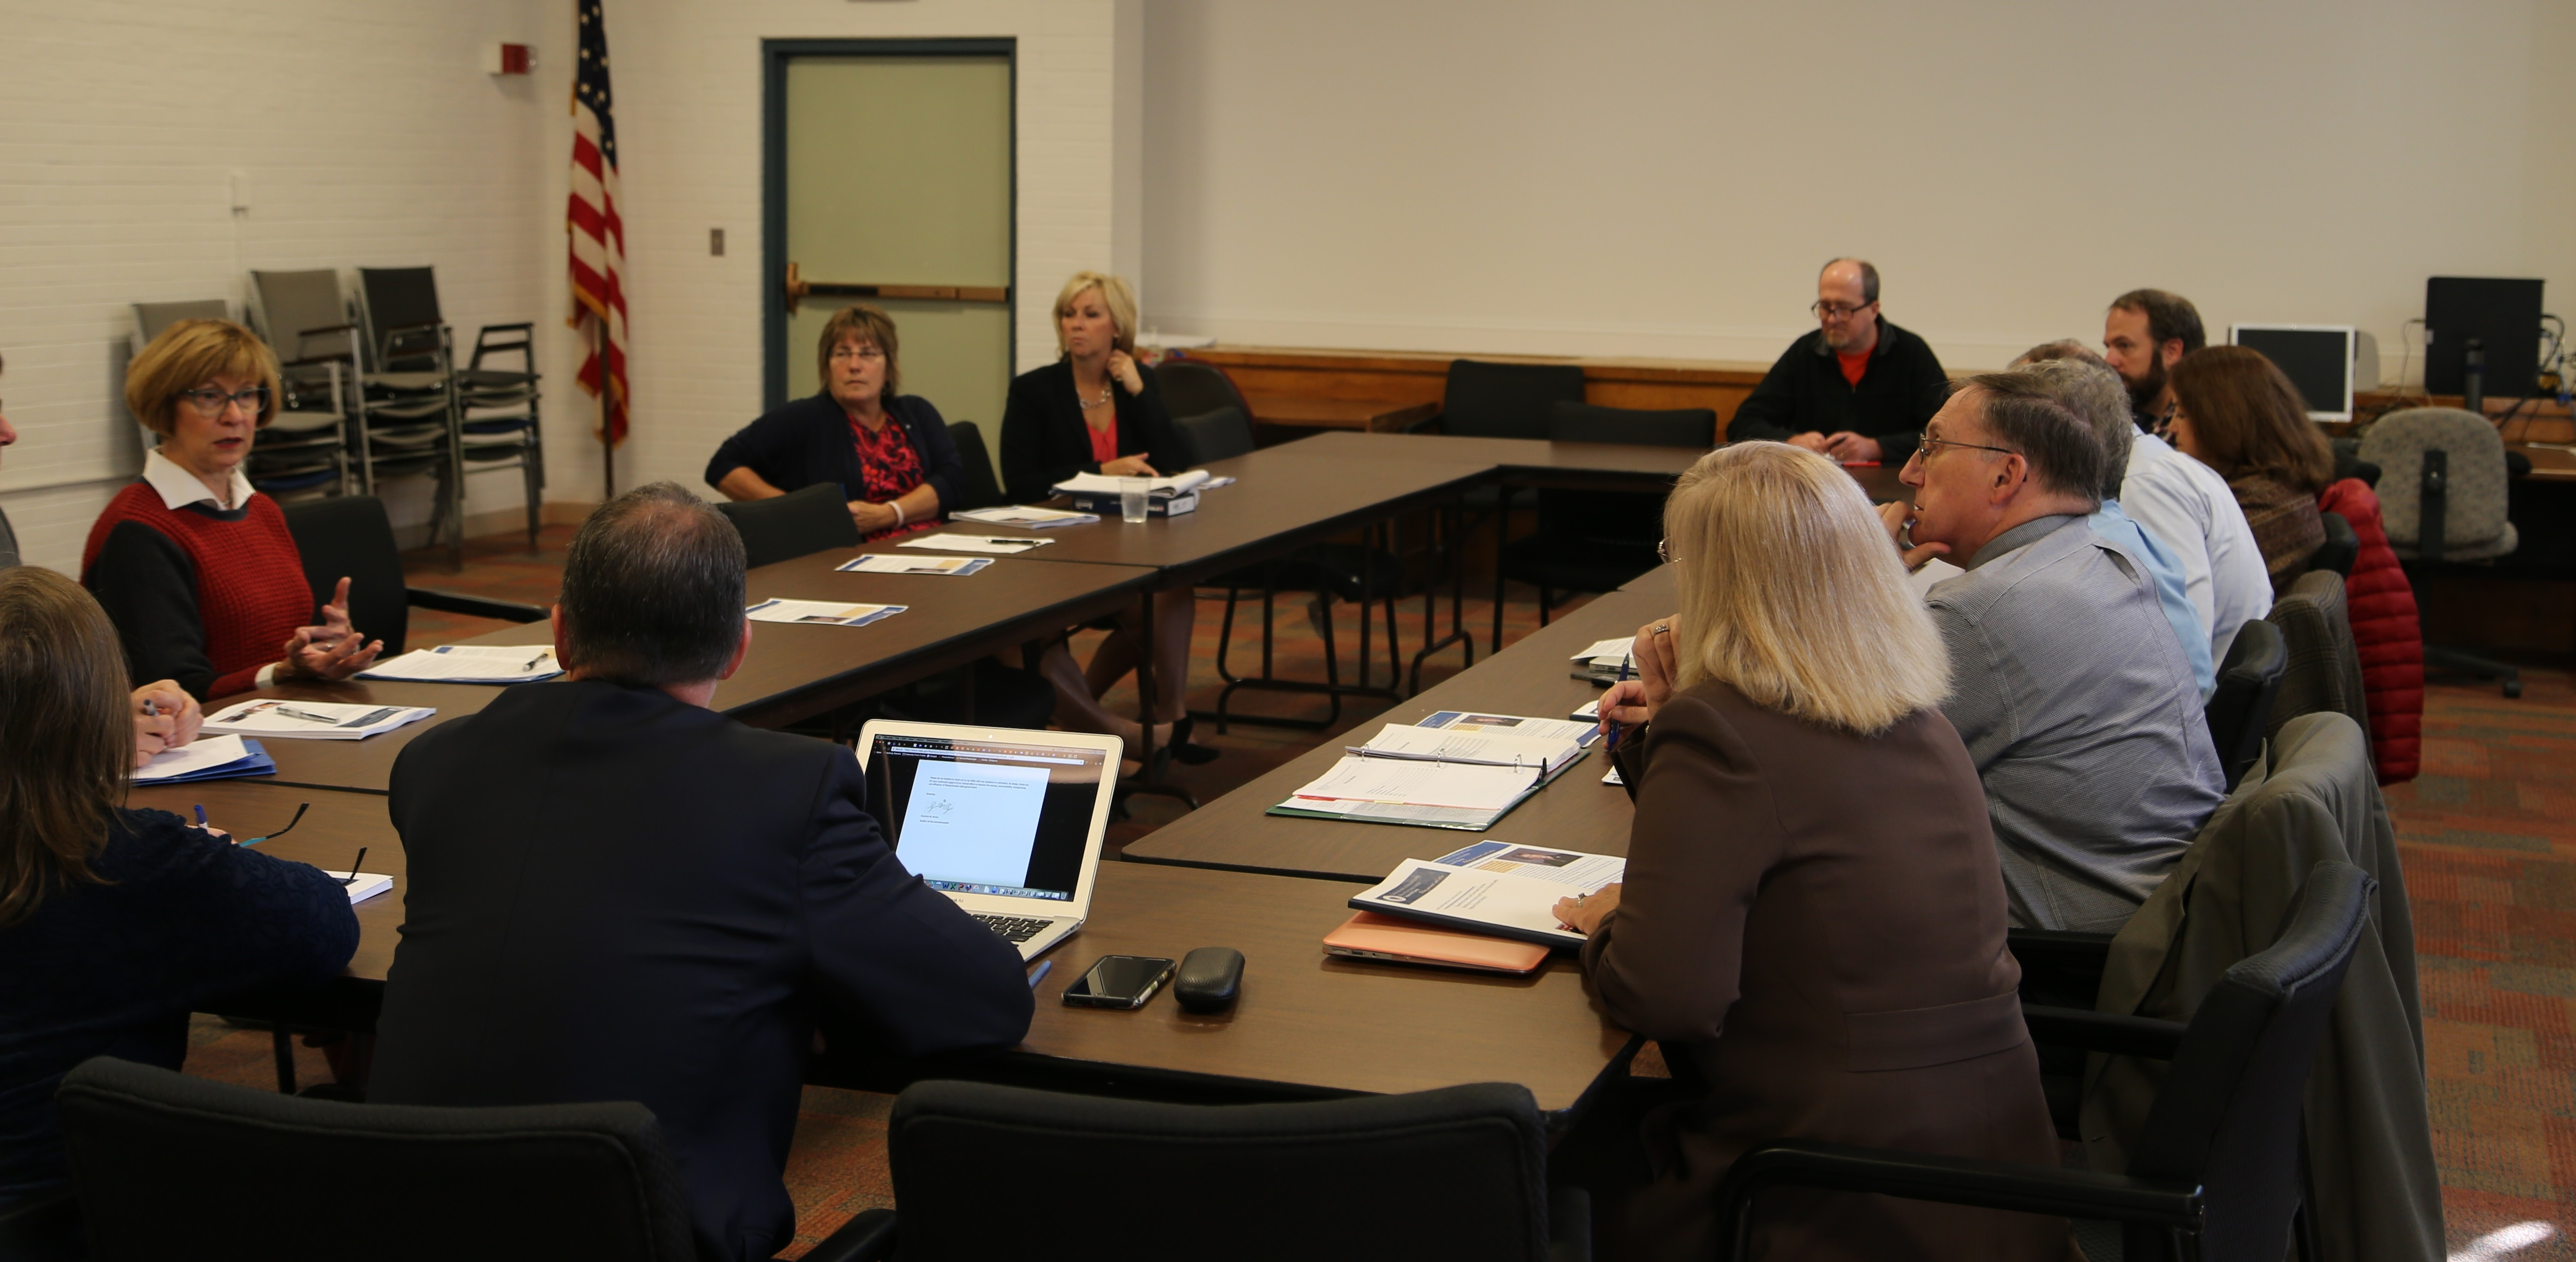 State Auditor Suzanne M. Bump (left) discusses the finding and recommendations contained in her office's analysis of the Massachusetts regional school district structure with representatives from the Wachusett Regional School District.